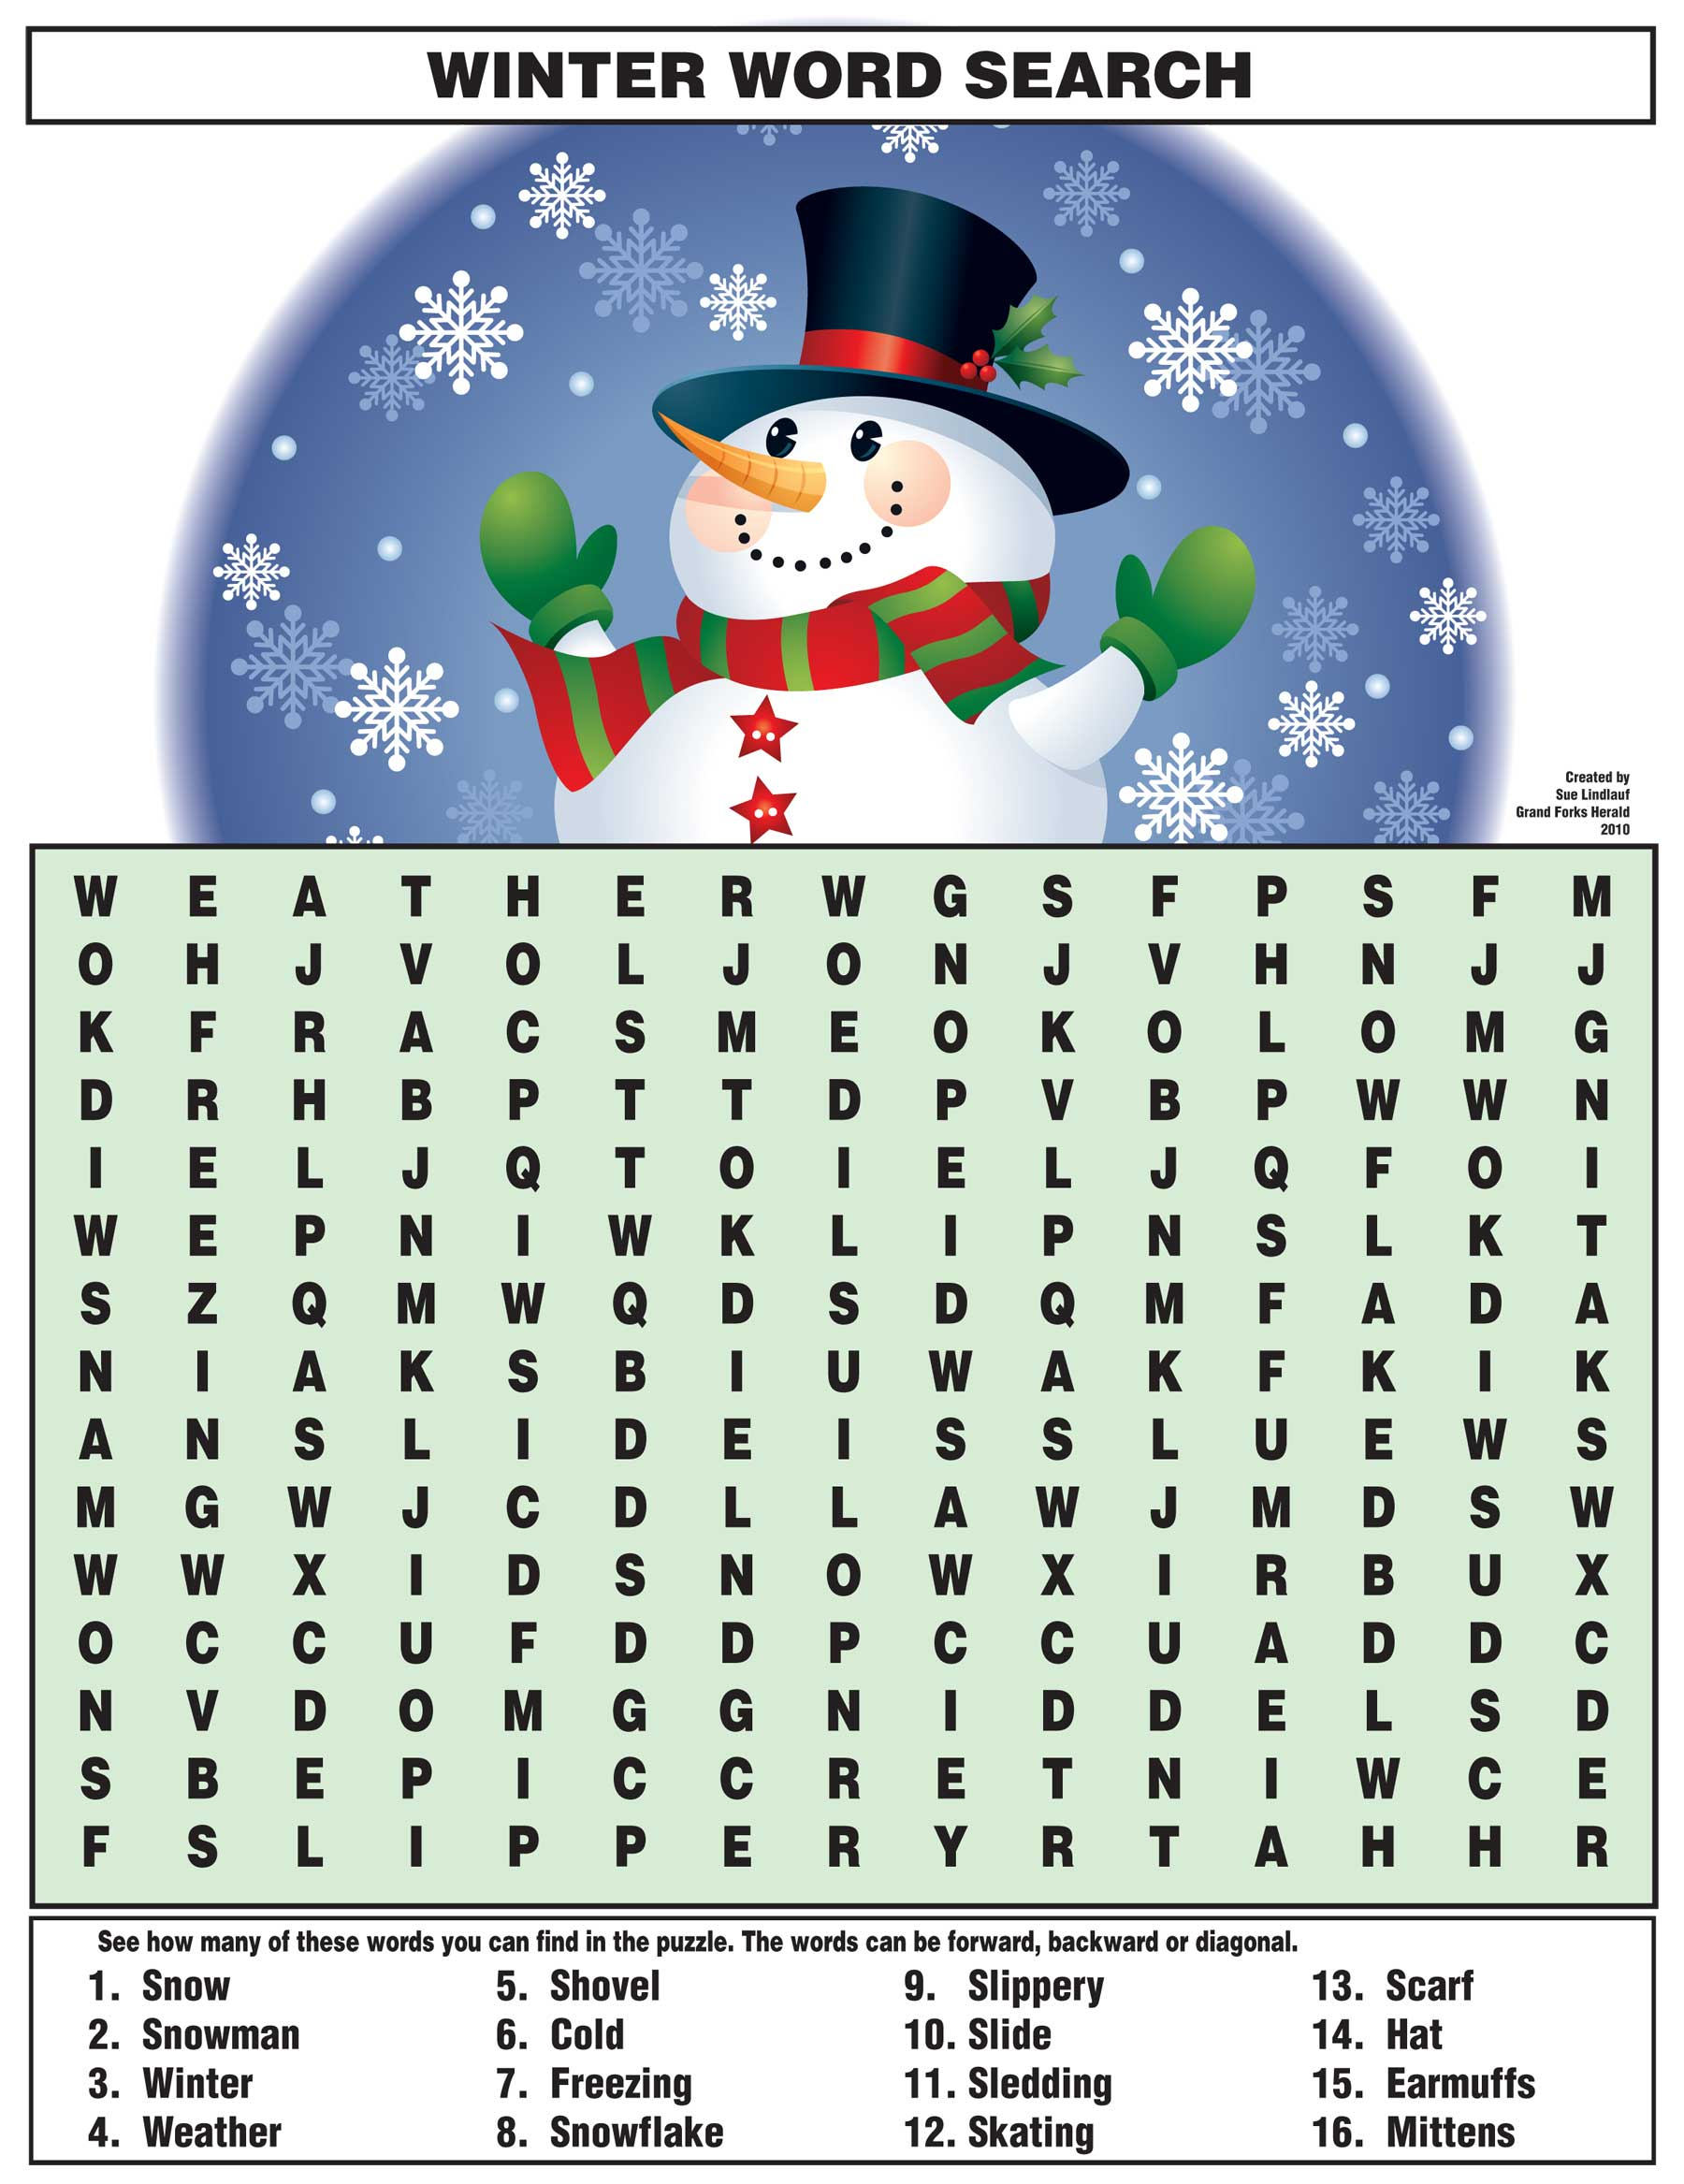 Winter Word Search   Kids Activities - Printable Snowman Puzzle